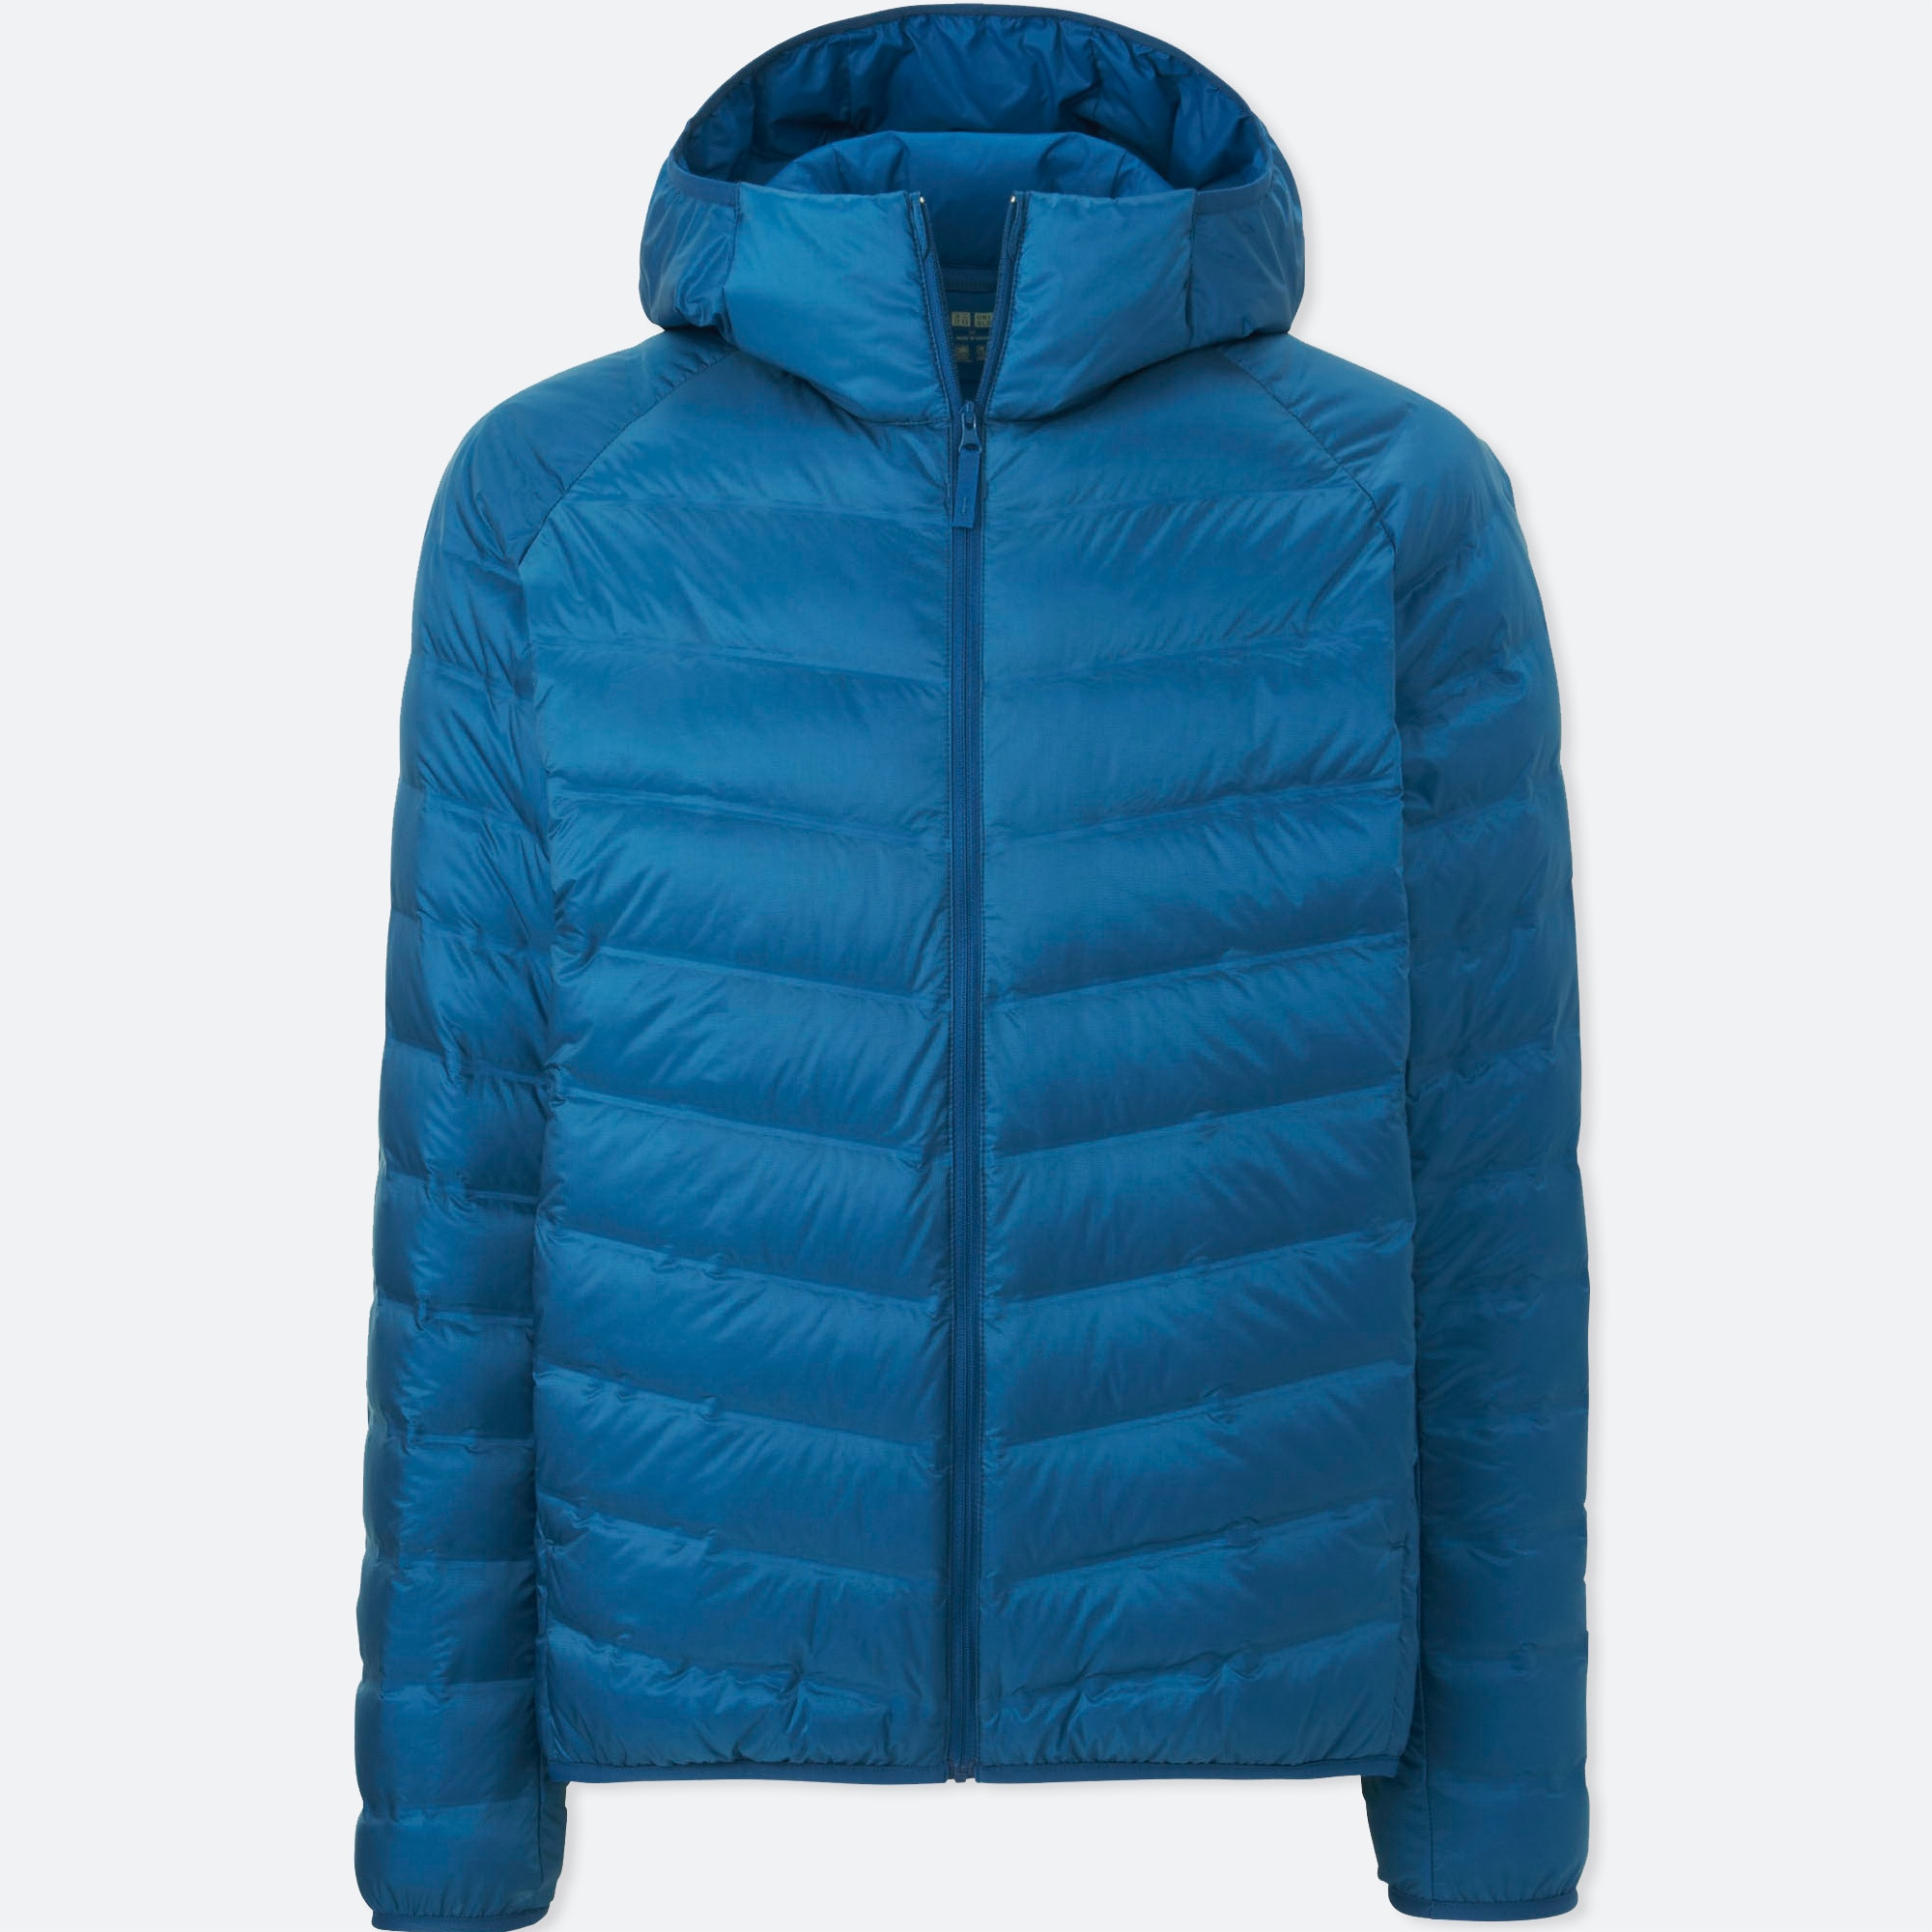 Uniqlo Ultra Light Down Jacket Size Chart Best Picture